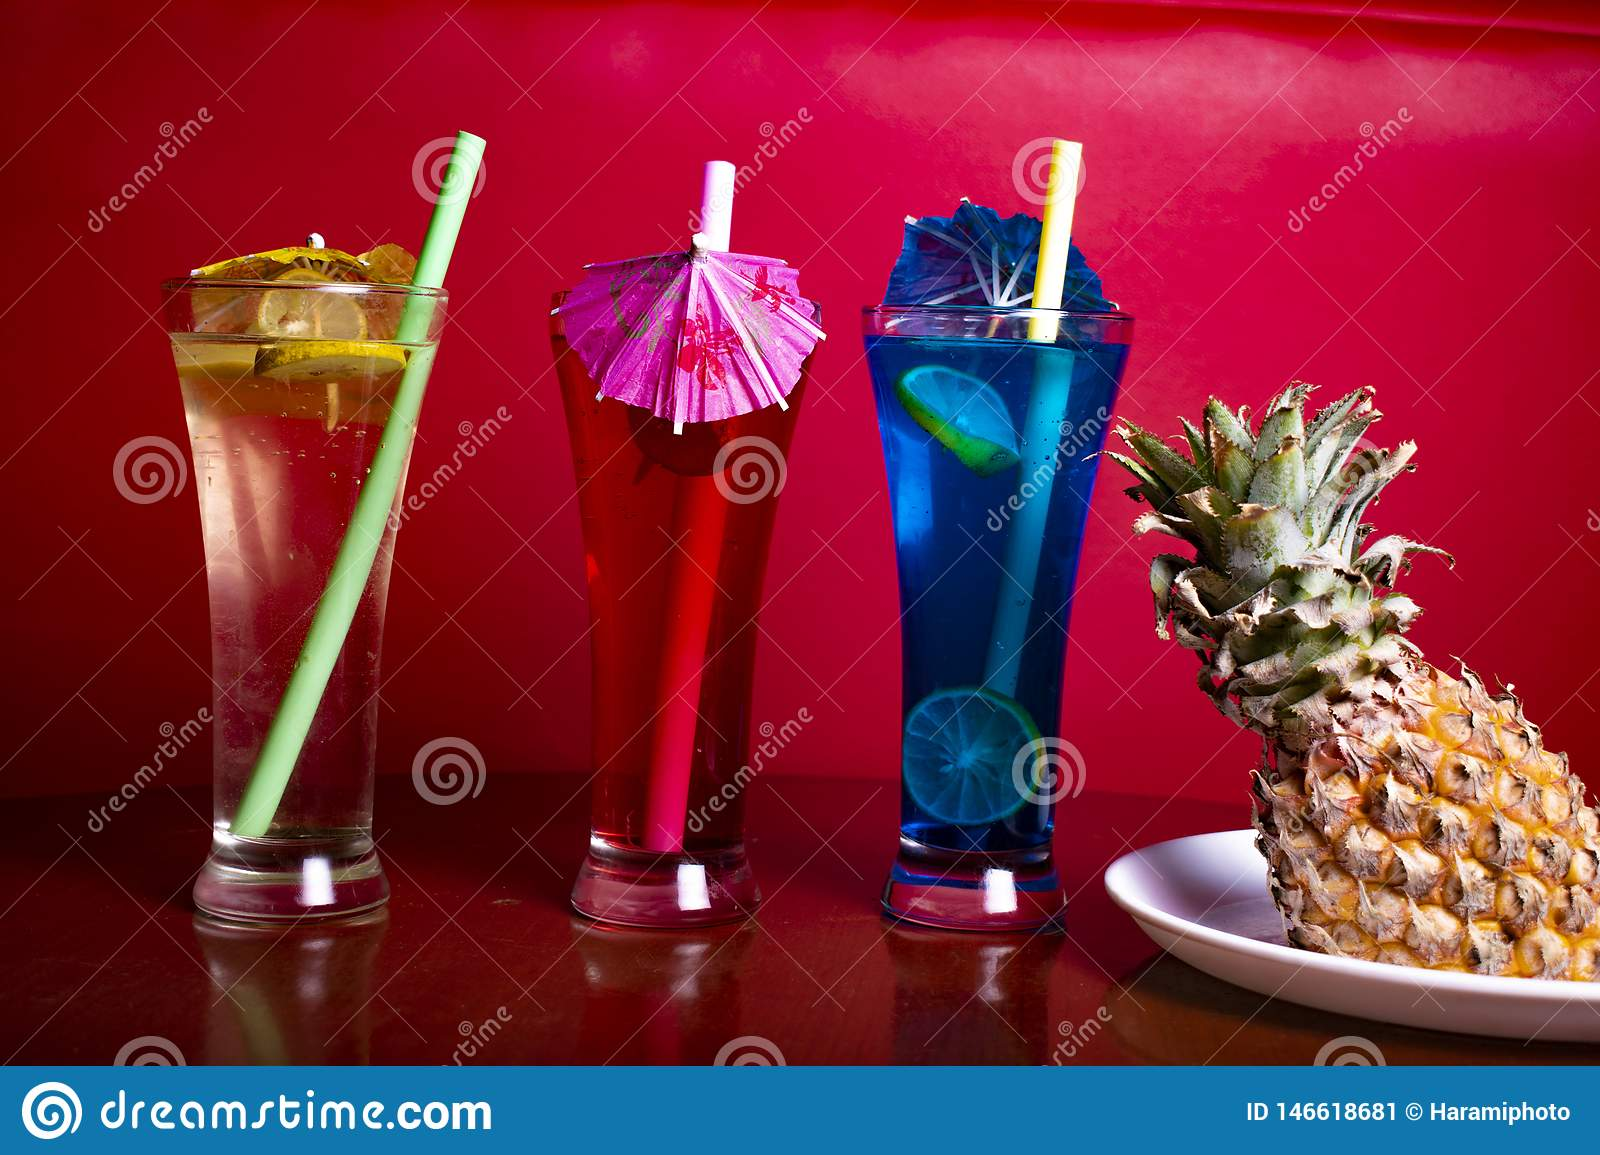 Mocktail in perfect red background with awesome color